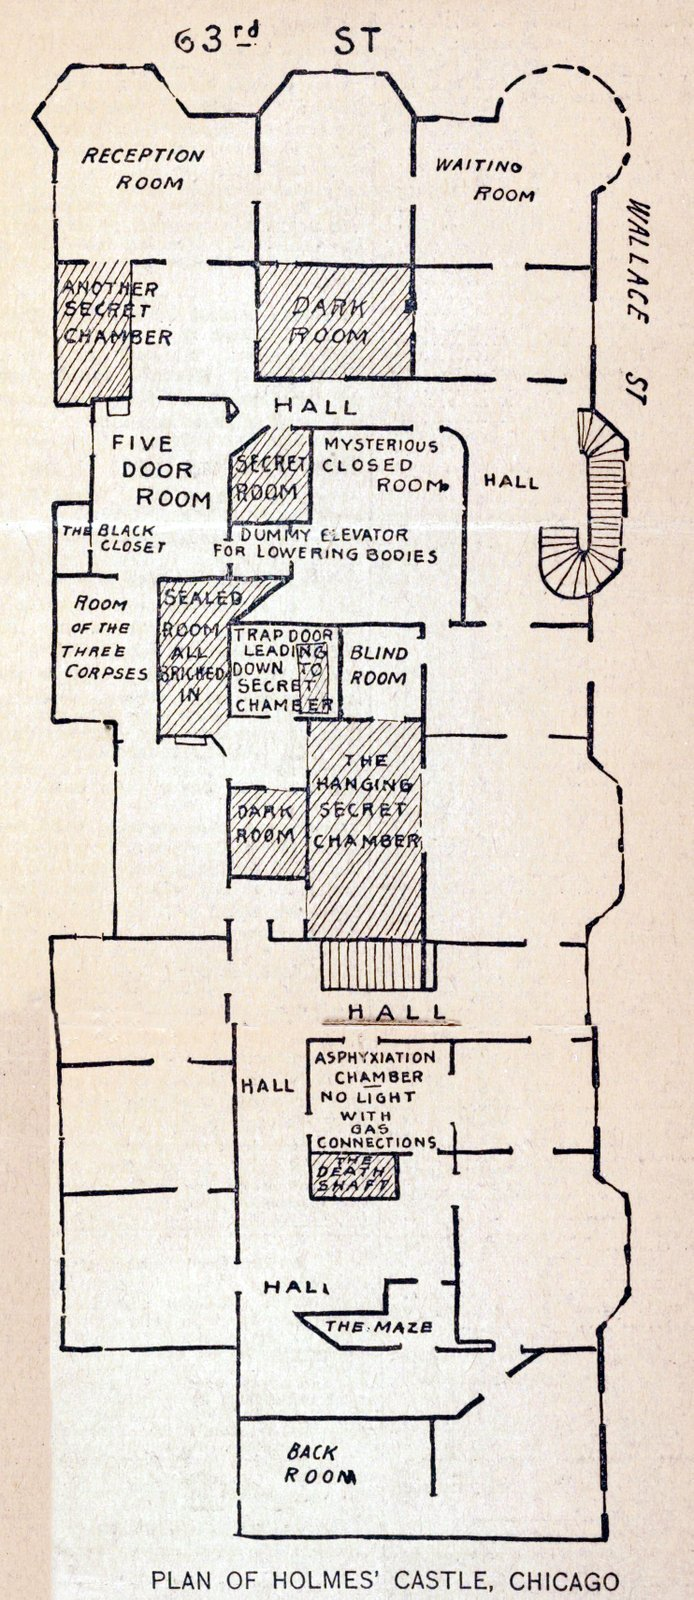 Floor plan of H H Holmes Murder Castle in Chicago from 1896